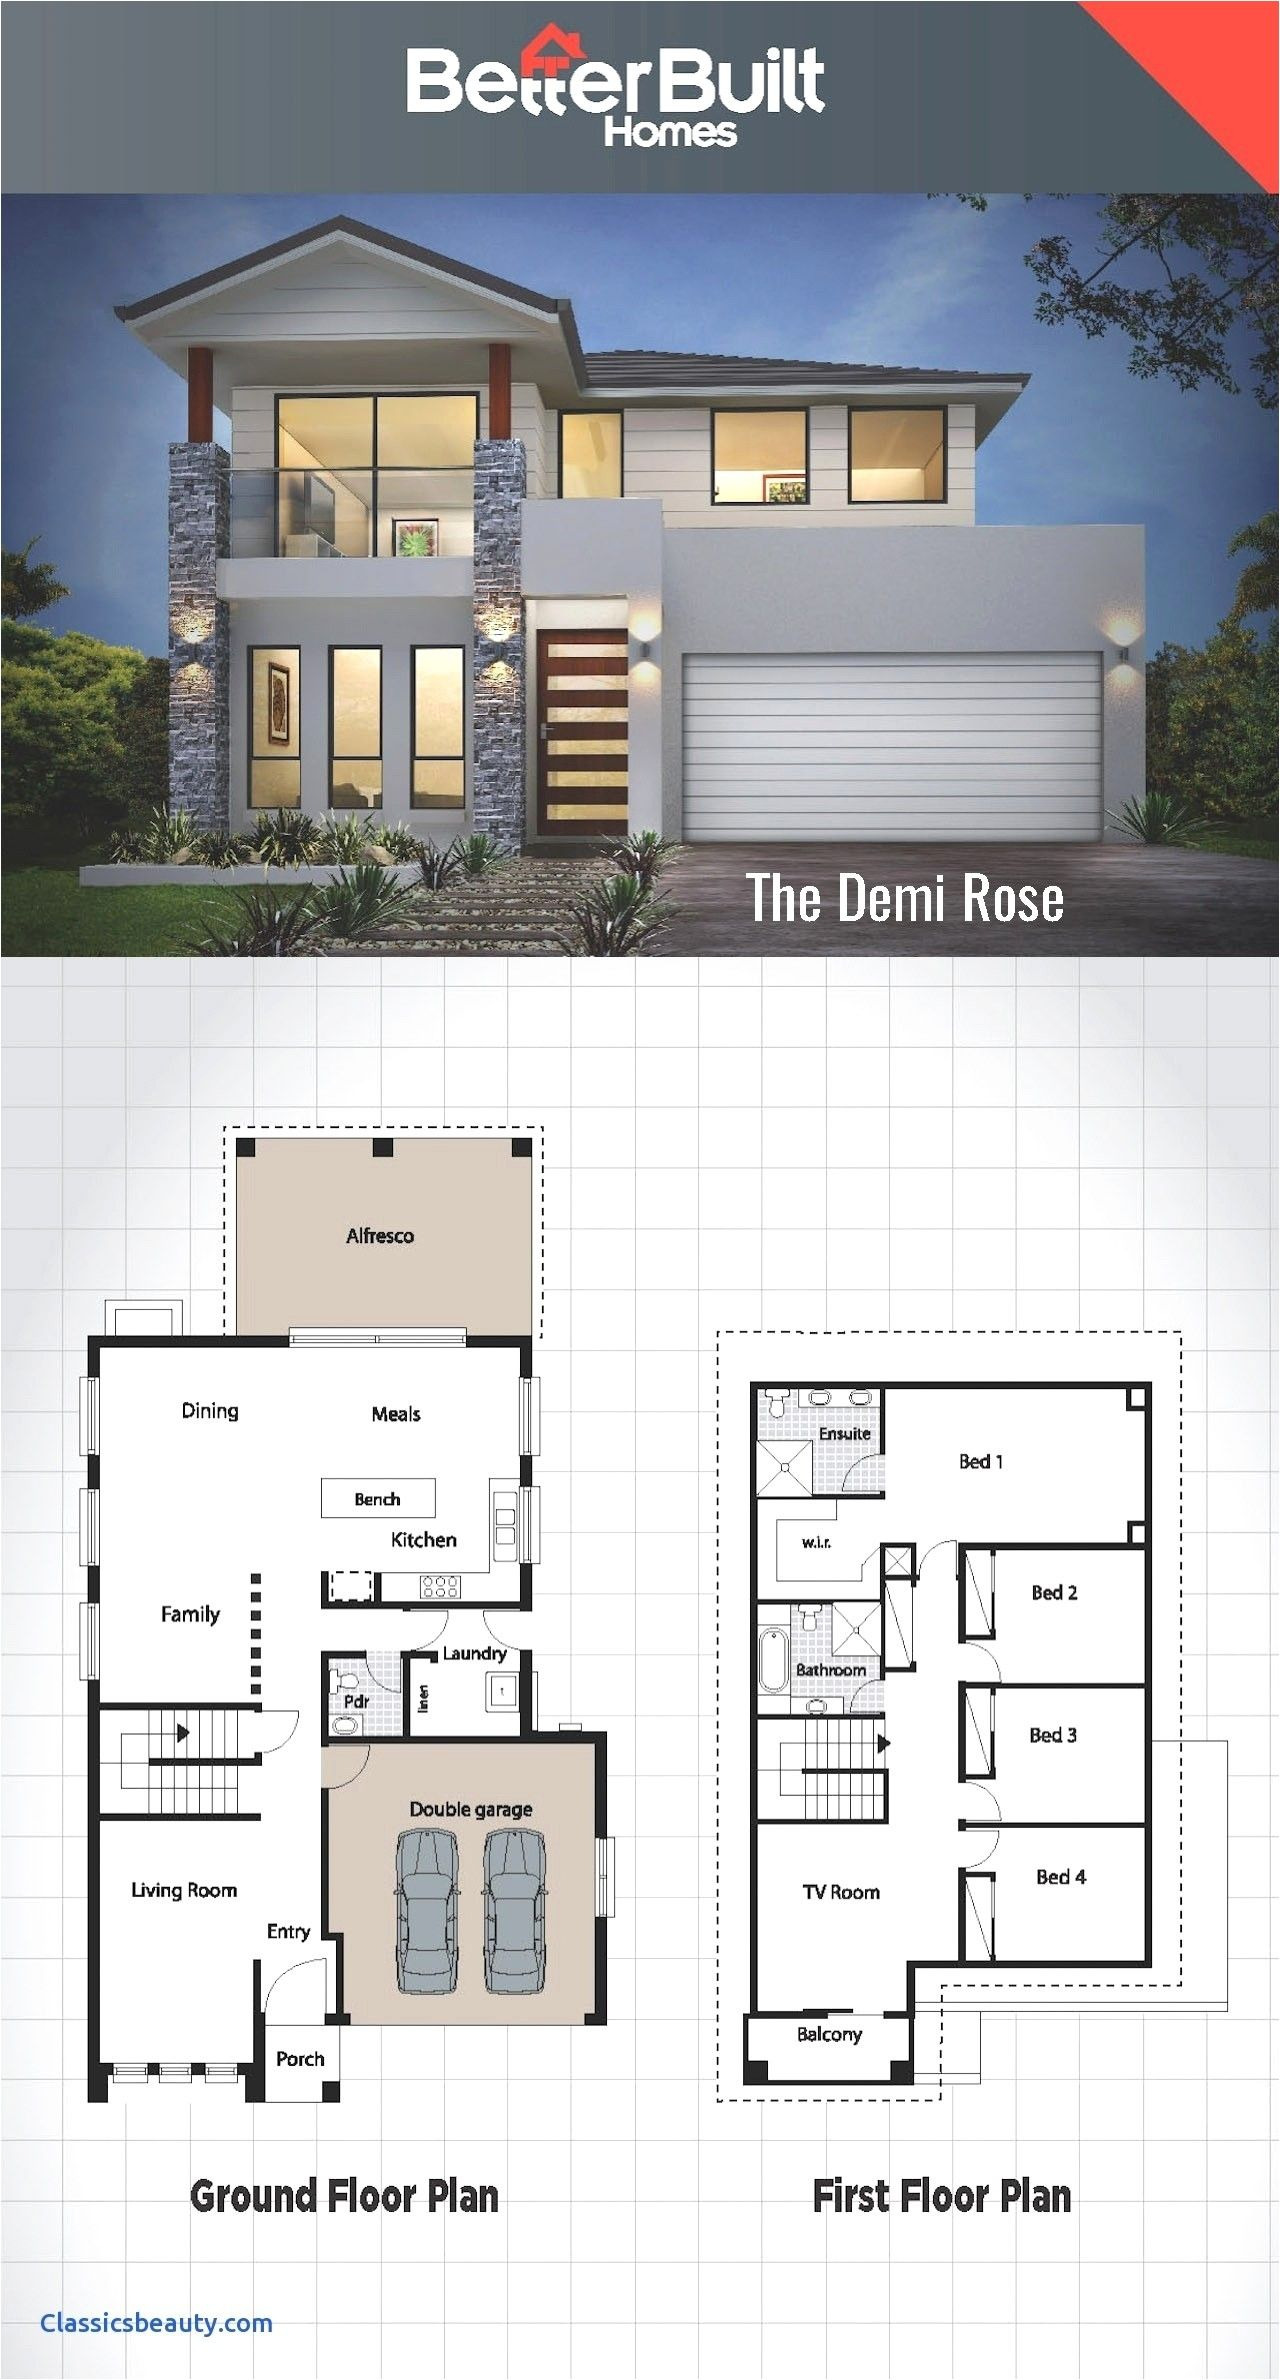 Build A Home for 100k Best Of House Plans Under 200k to Build Philippines